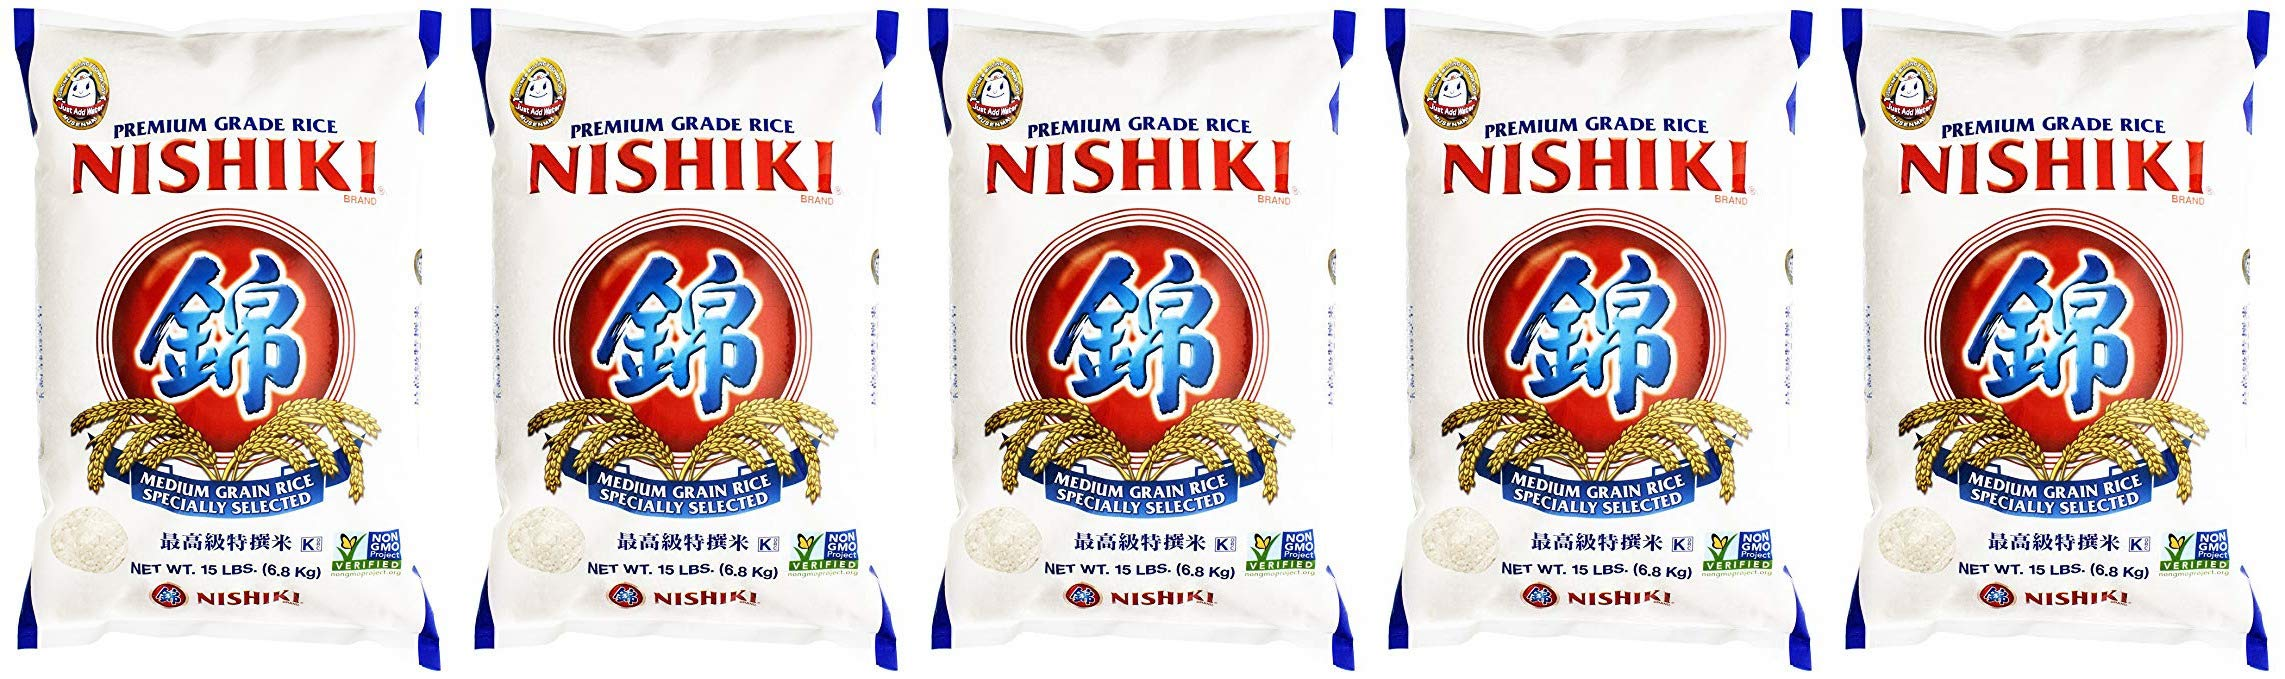 Nishiki Premium Rice, Medium Grain, 240 Oz, 5 Pack